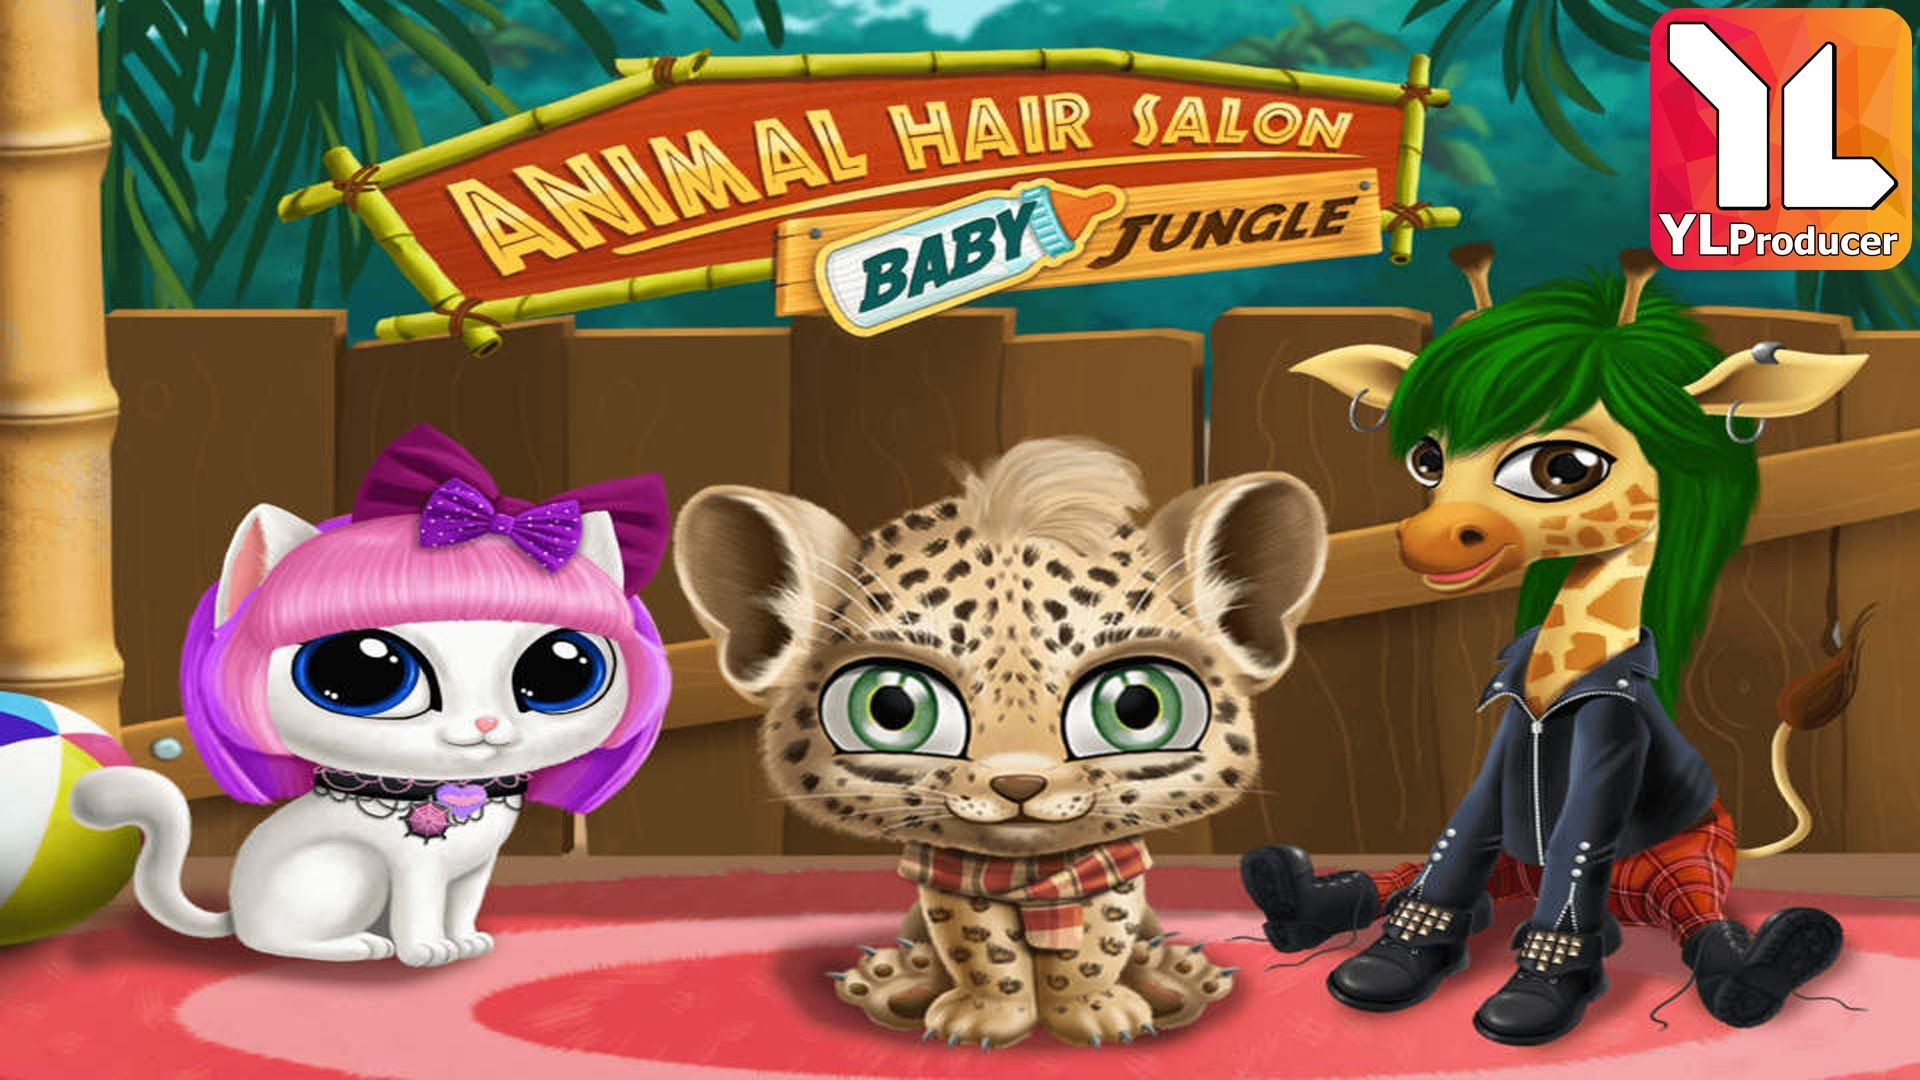 Baby Jungle Animal Hair Salon » Wild Pets Haircut & Style Makeover. Cut, color, shampoo, style and dress up super cute tropical animals sloth, leopard, toucan, elephant and giraffe! Our top game for kids and toddlers Animal Hair Salon now takes the little ones on a crazy jungle hairstyle adventure with new adorable animals and even more makeover fun inside!  #game #gameplay